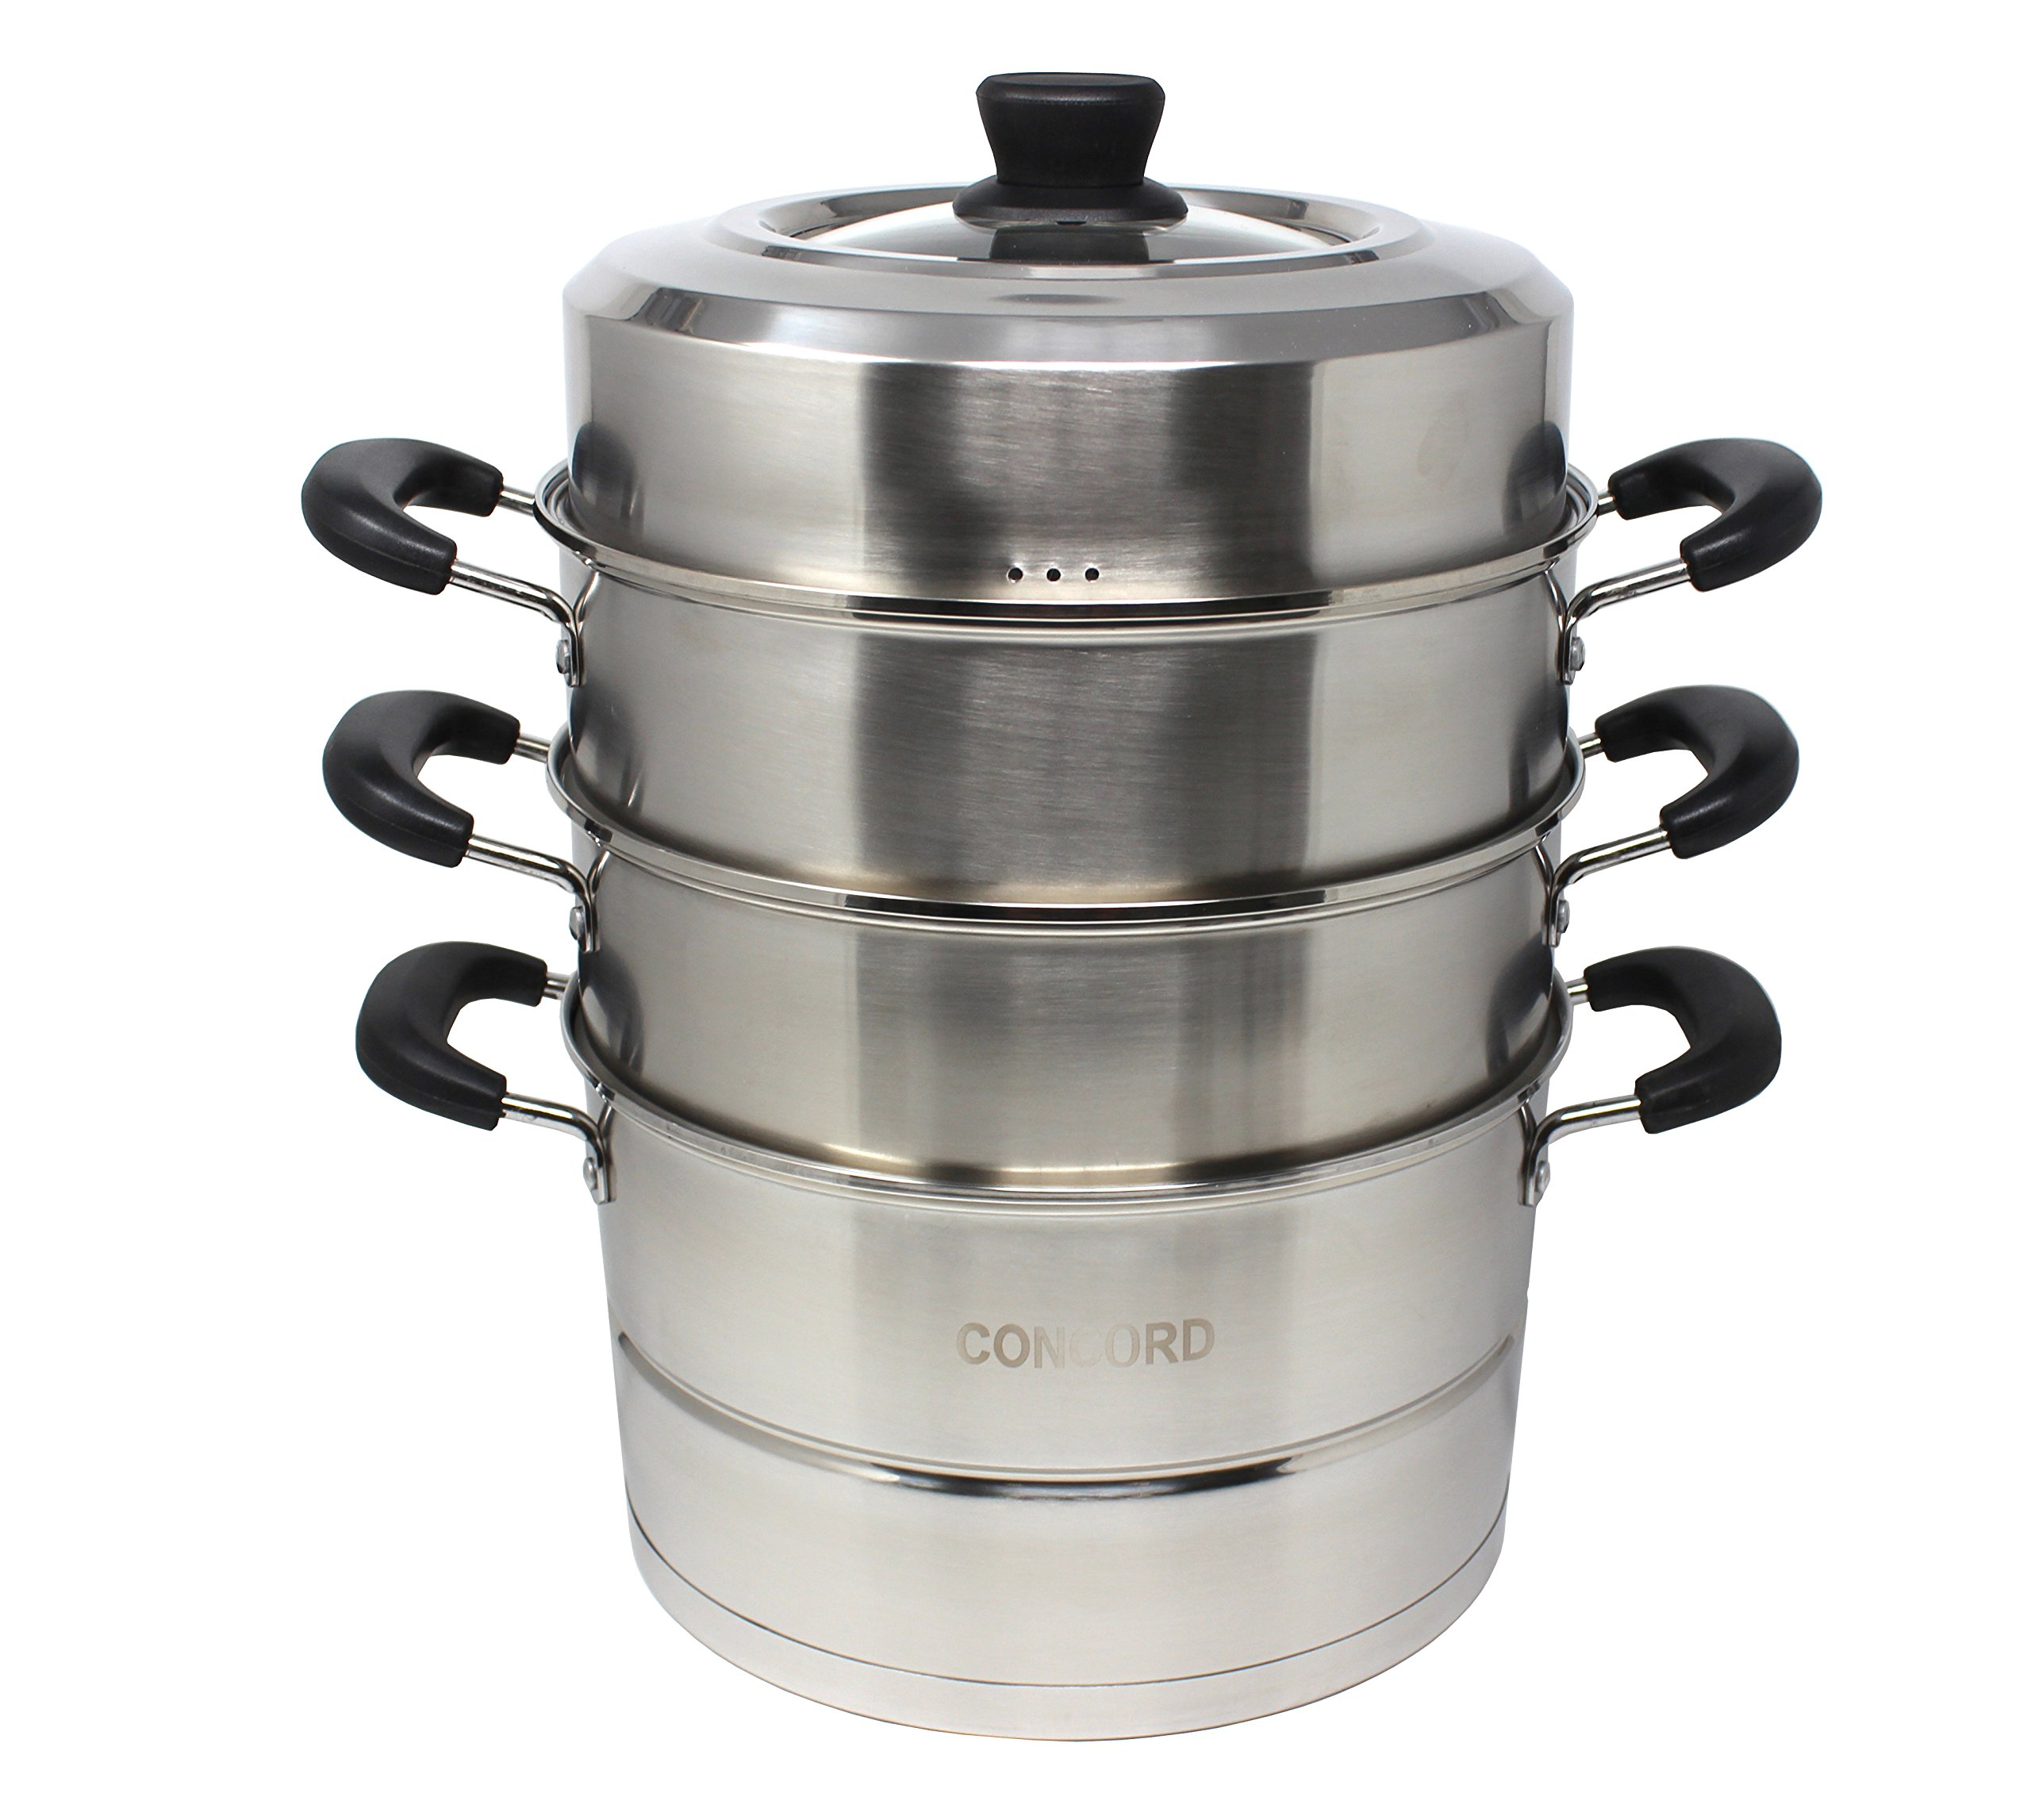 CONCORD 3 Tier Premium Stainless Steel Steamer Set (32 CM)